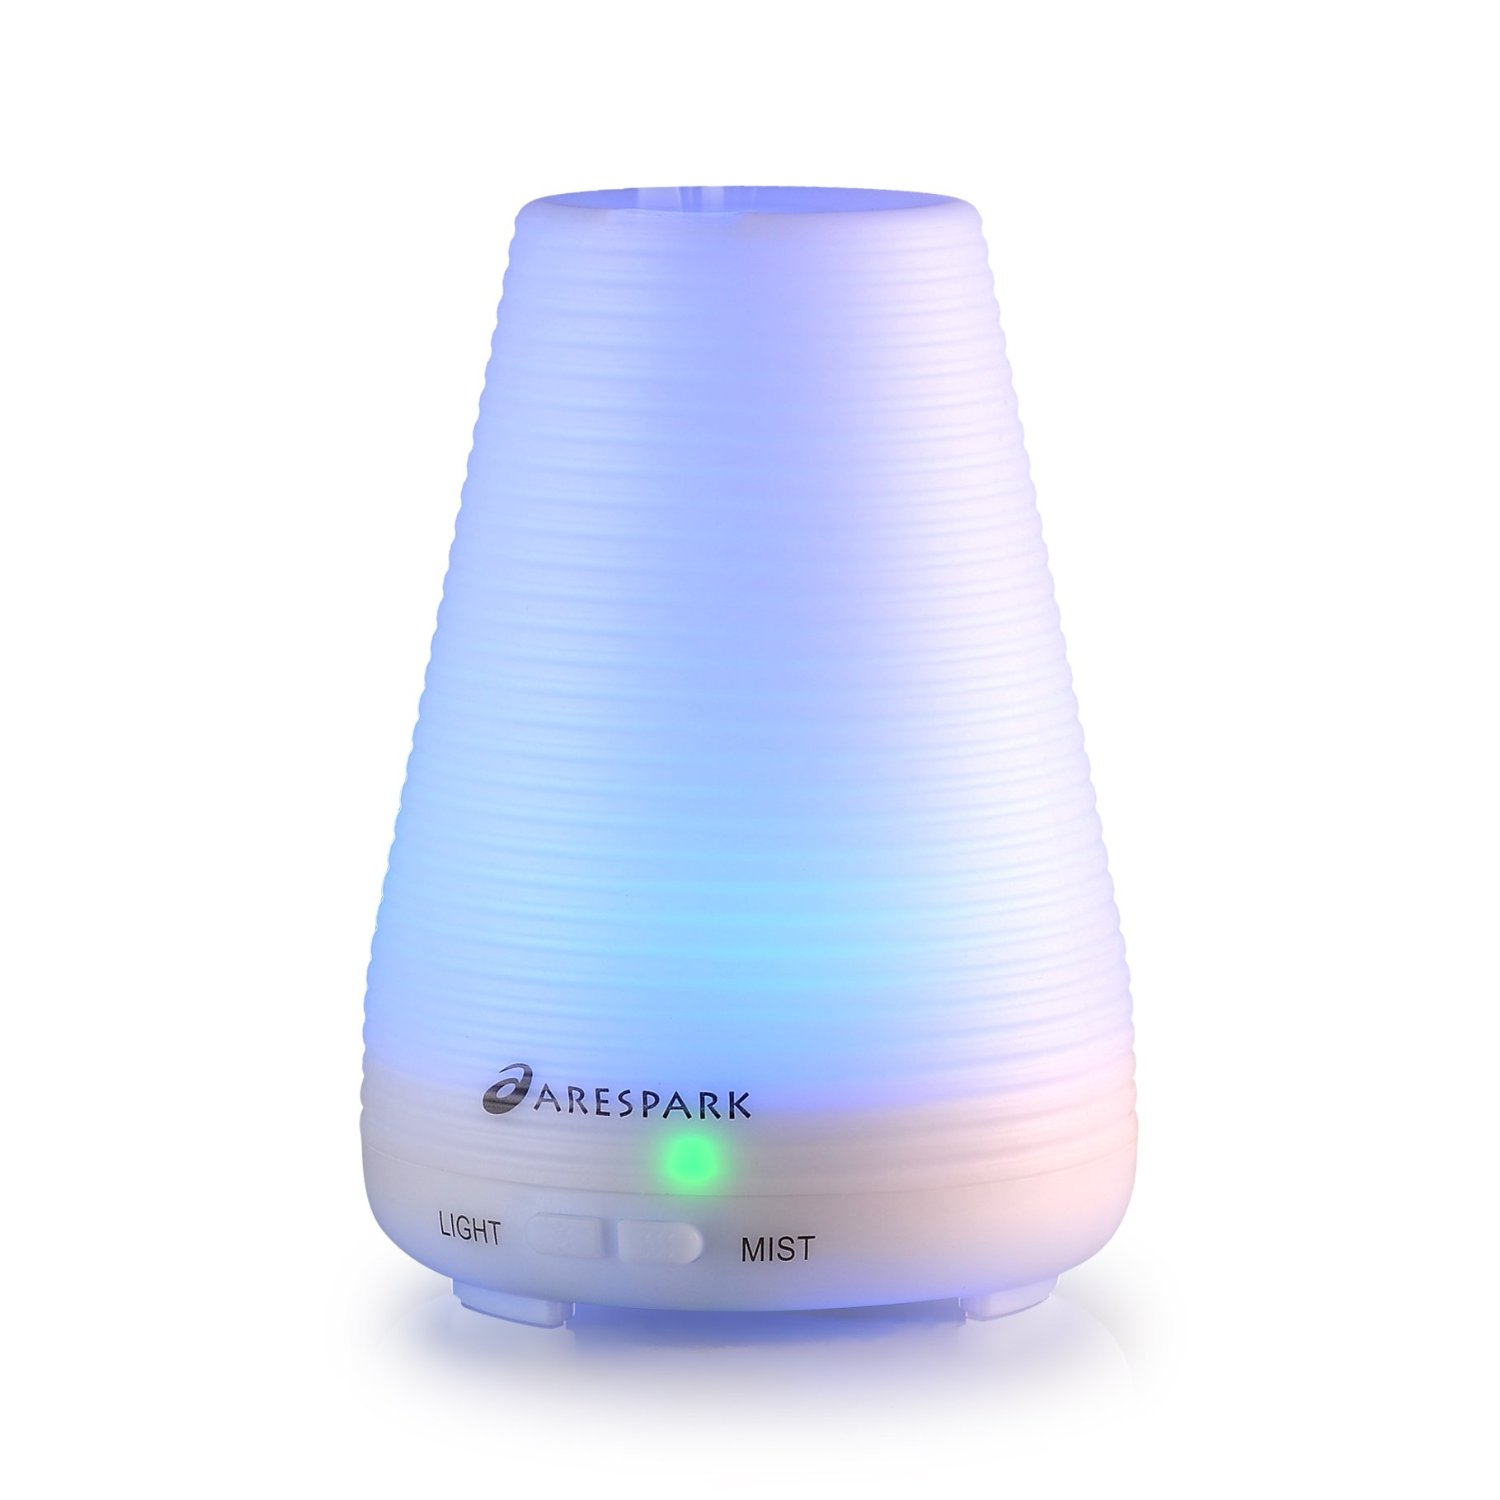 Do you use essential oils? The Arespark Essential Oil Diffuser is  #0A54C1